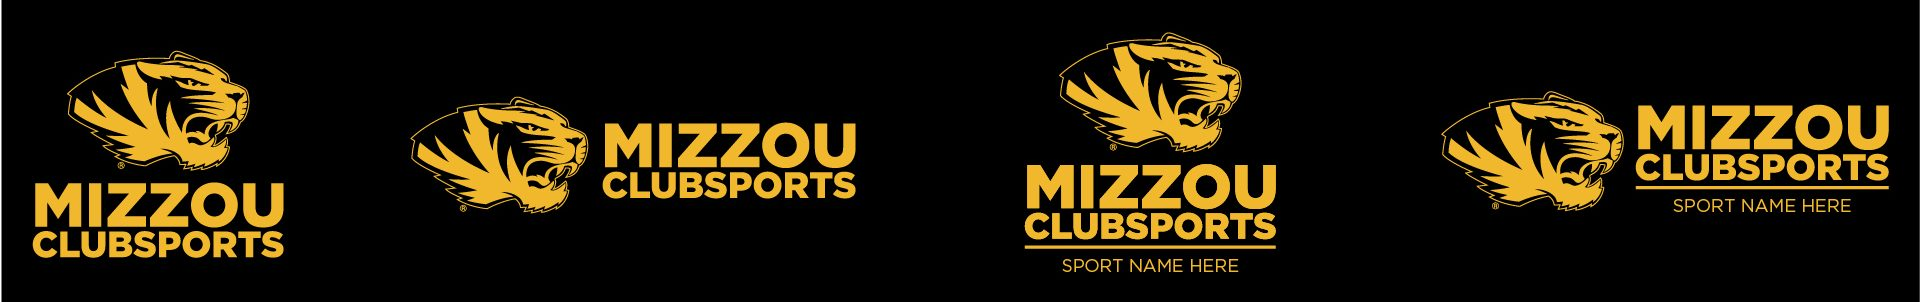 Graphic of the approved Mizzou Club Sports logos in one color.